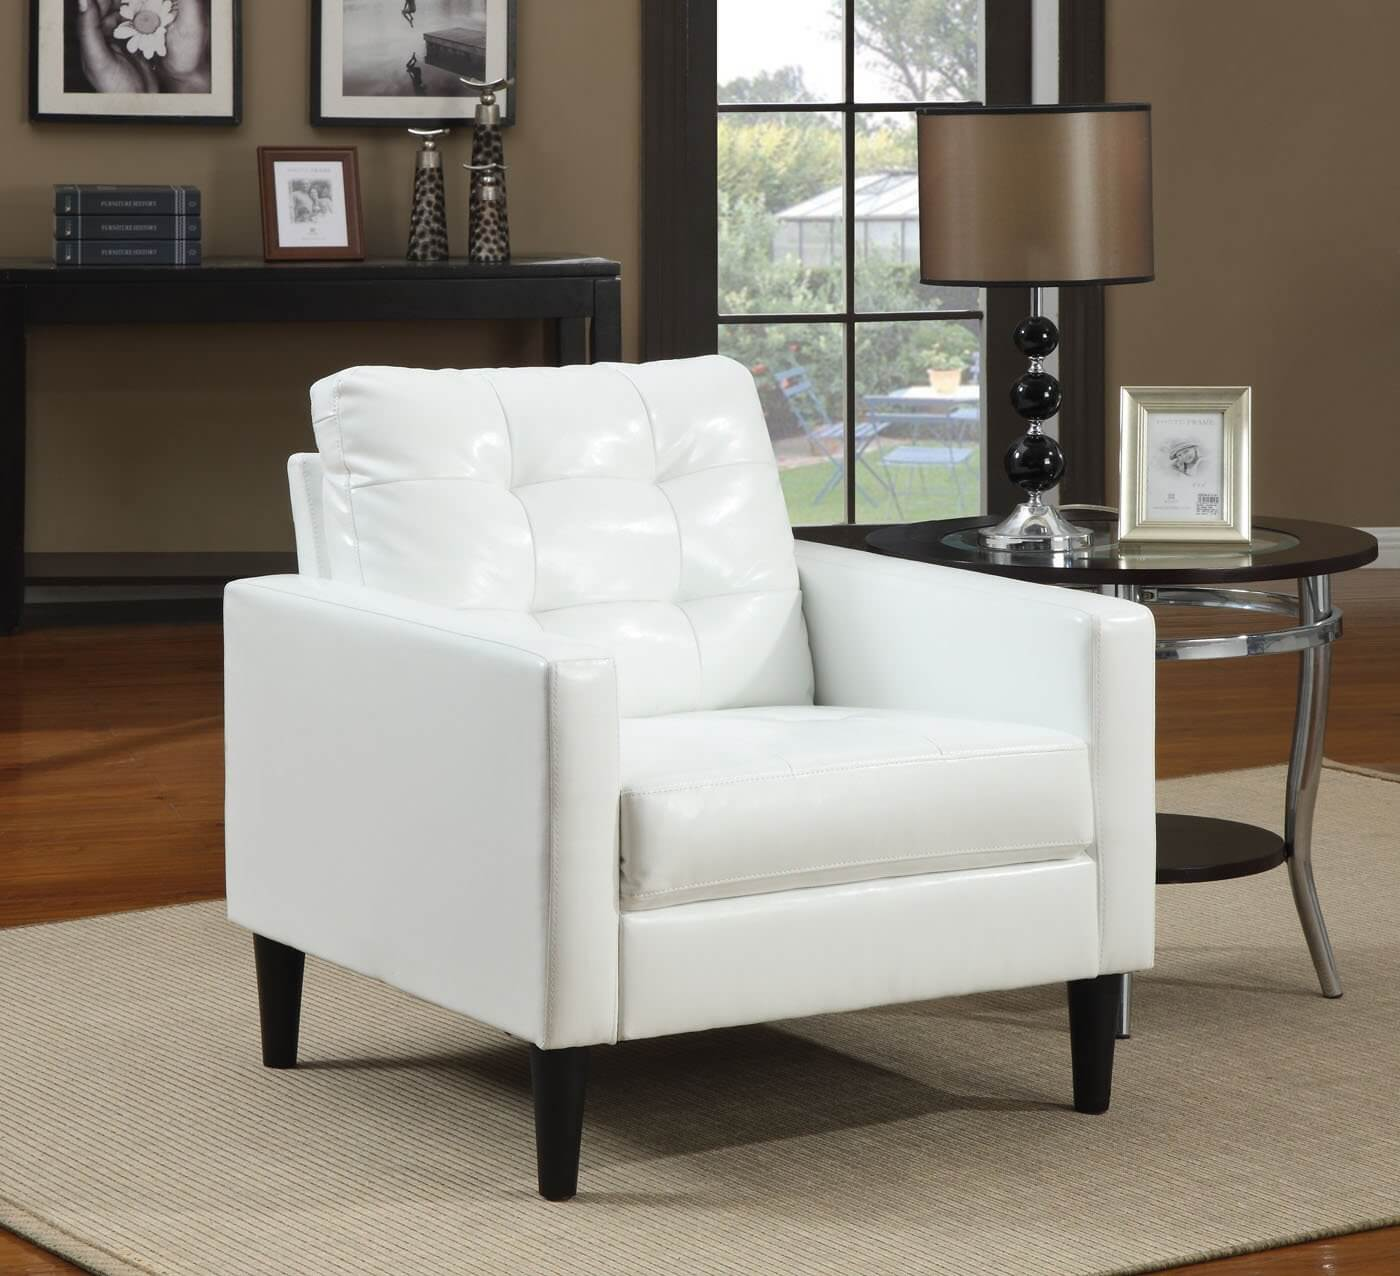 Balin collection accent chair from ACME features stuffed cushion back in polyurethane faux white leather, with foam stuffing and black wood tapered feet.